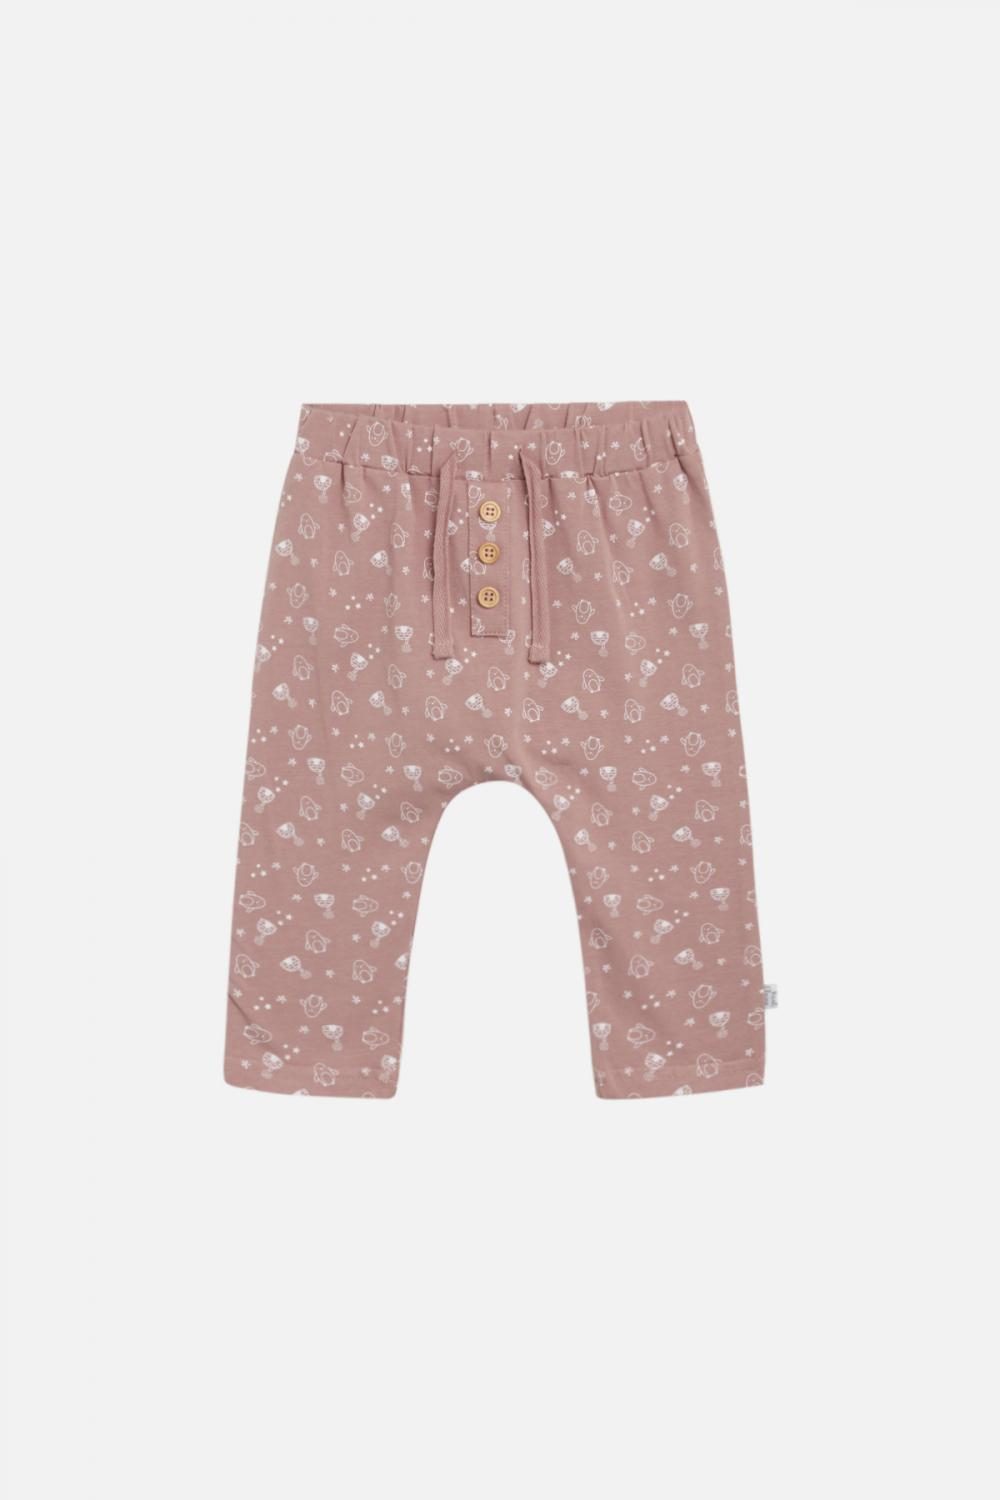 HUST&CLAIRE PANTS 39139059 BURFWWOD